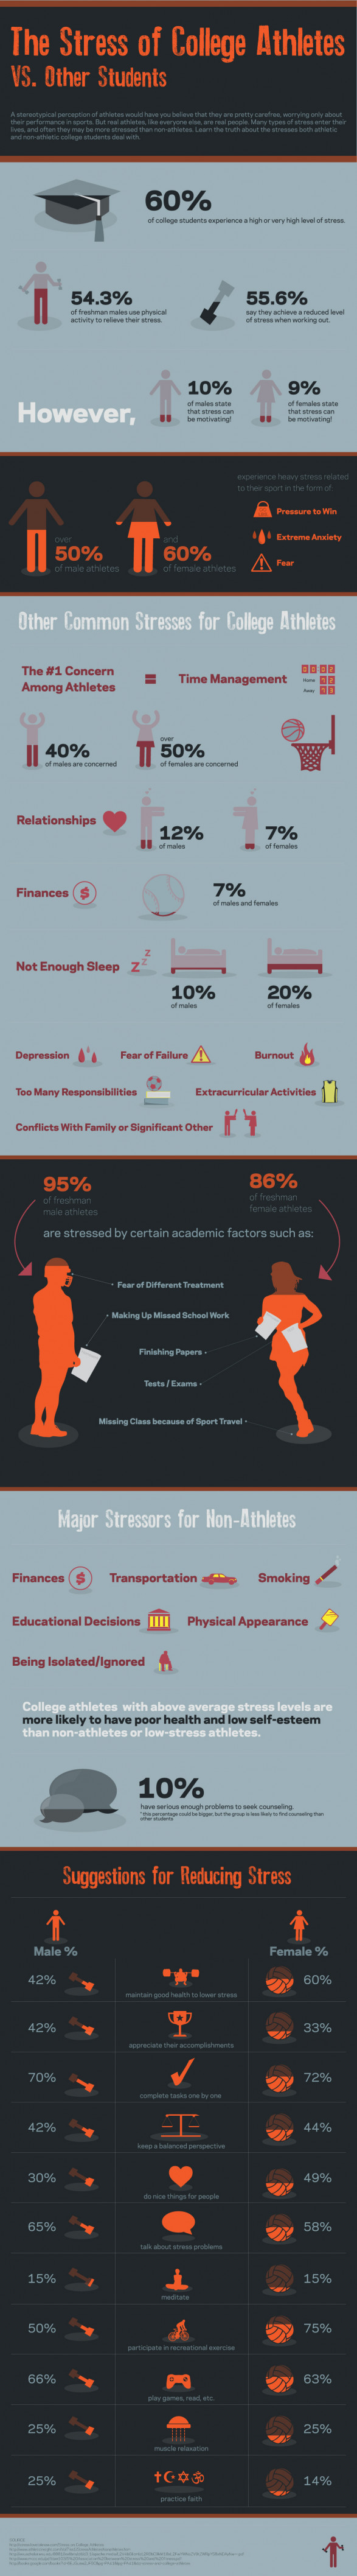 Stress of College Athletes vs. Other Students